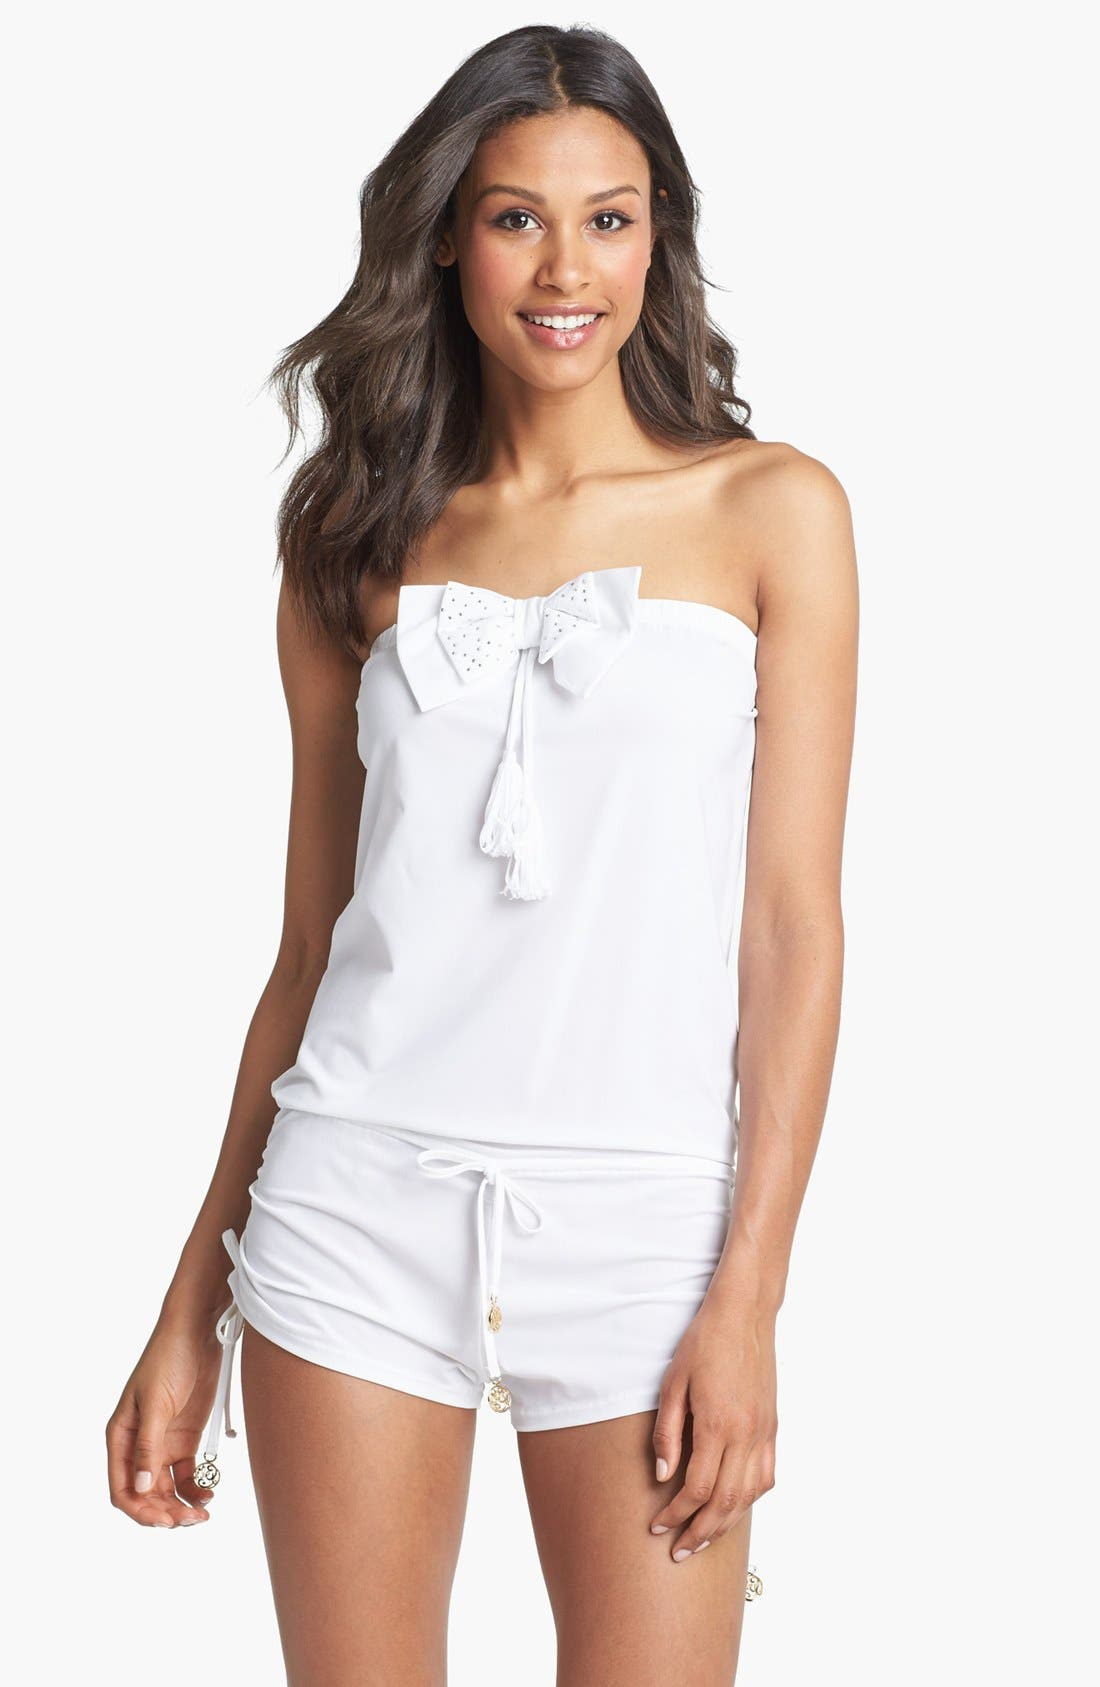 Alternate Image 1 Selected - Luli Fama 'Lazos' Romper Cover-Up